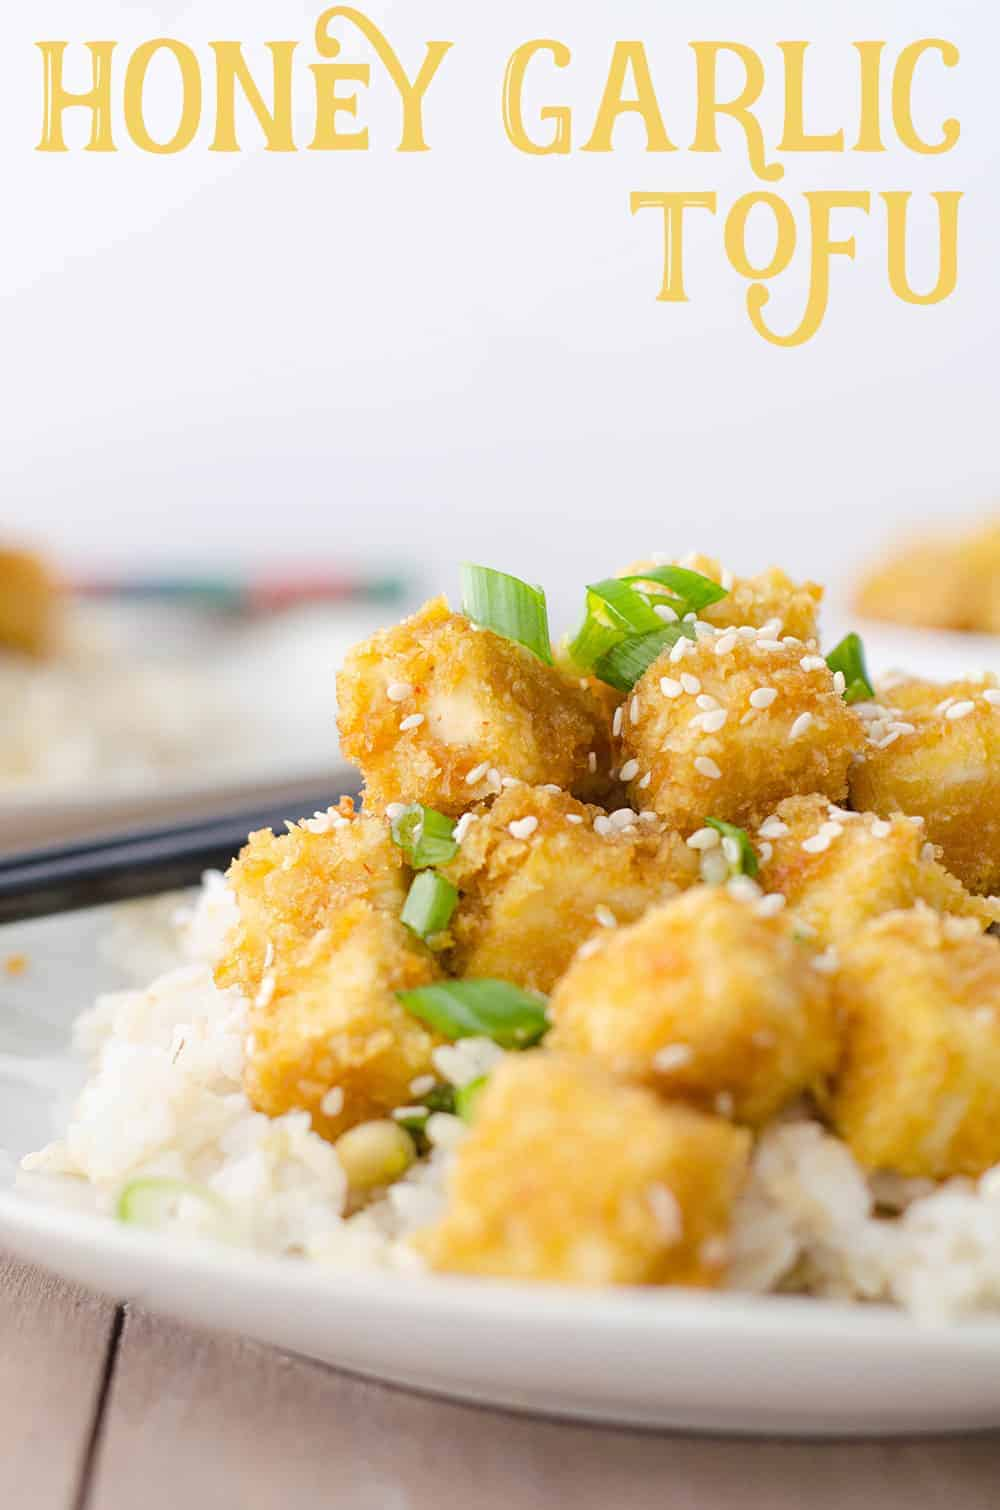 Honey Garlic Baked Tofu! Better than takeout! Crispy baked tofu nuggets in a sweet garlic sauce. Perfect over brown rice or steamed vegetables! Vegetarian and Gluten-Free. | www.delishknowledge.com